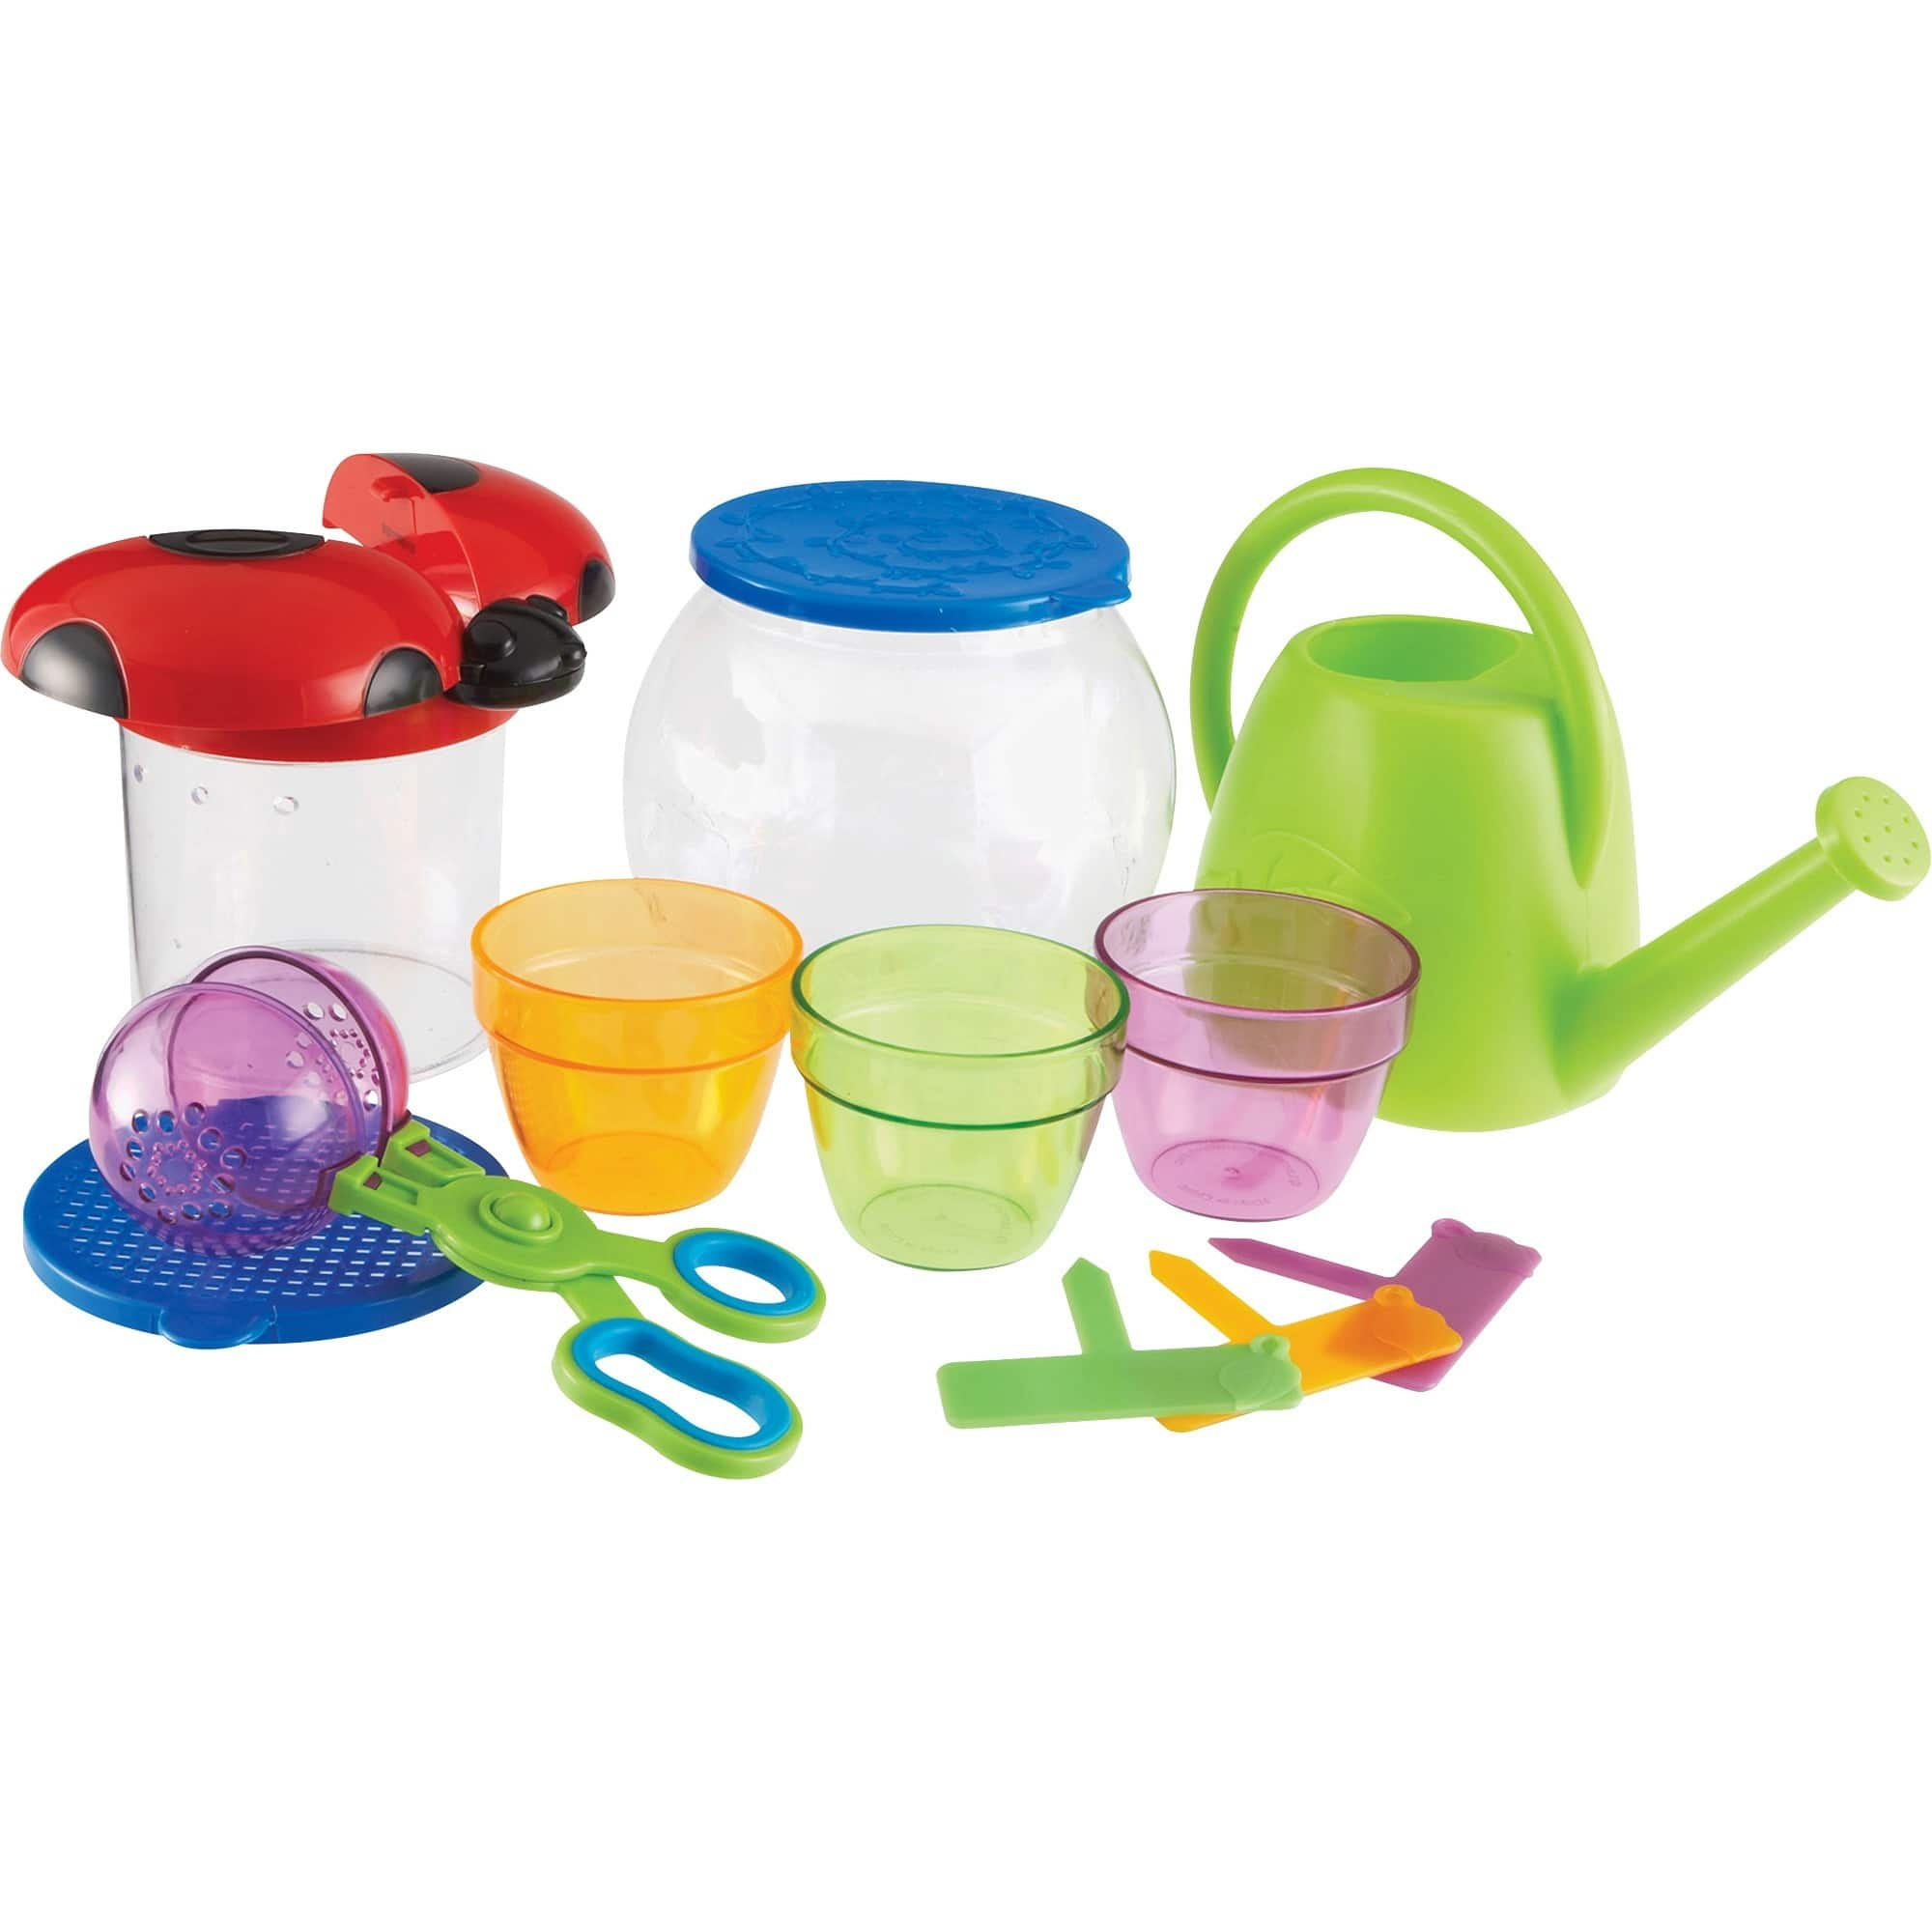 22-Piece Learning Resources Outdoor Discovery Set $8.24 + Free Shipping with Prime